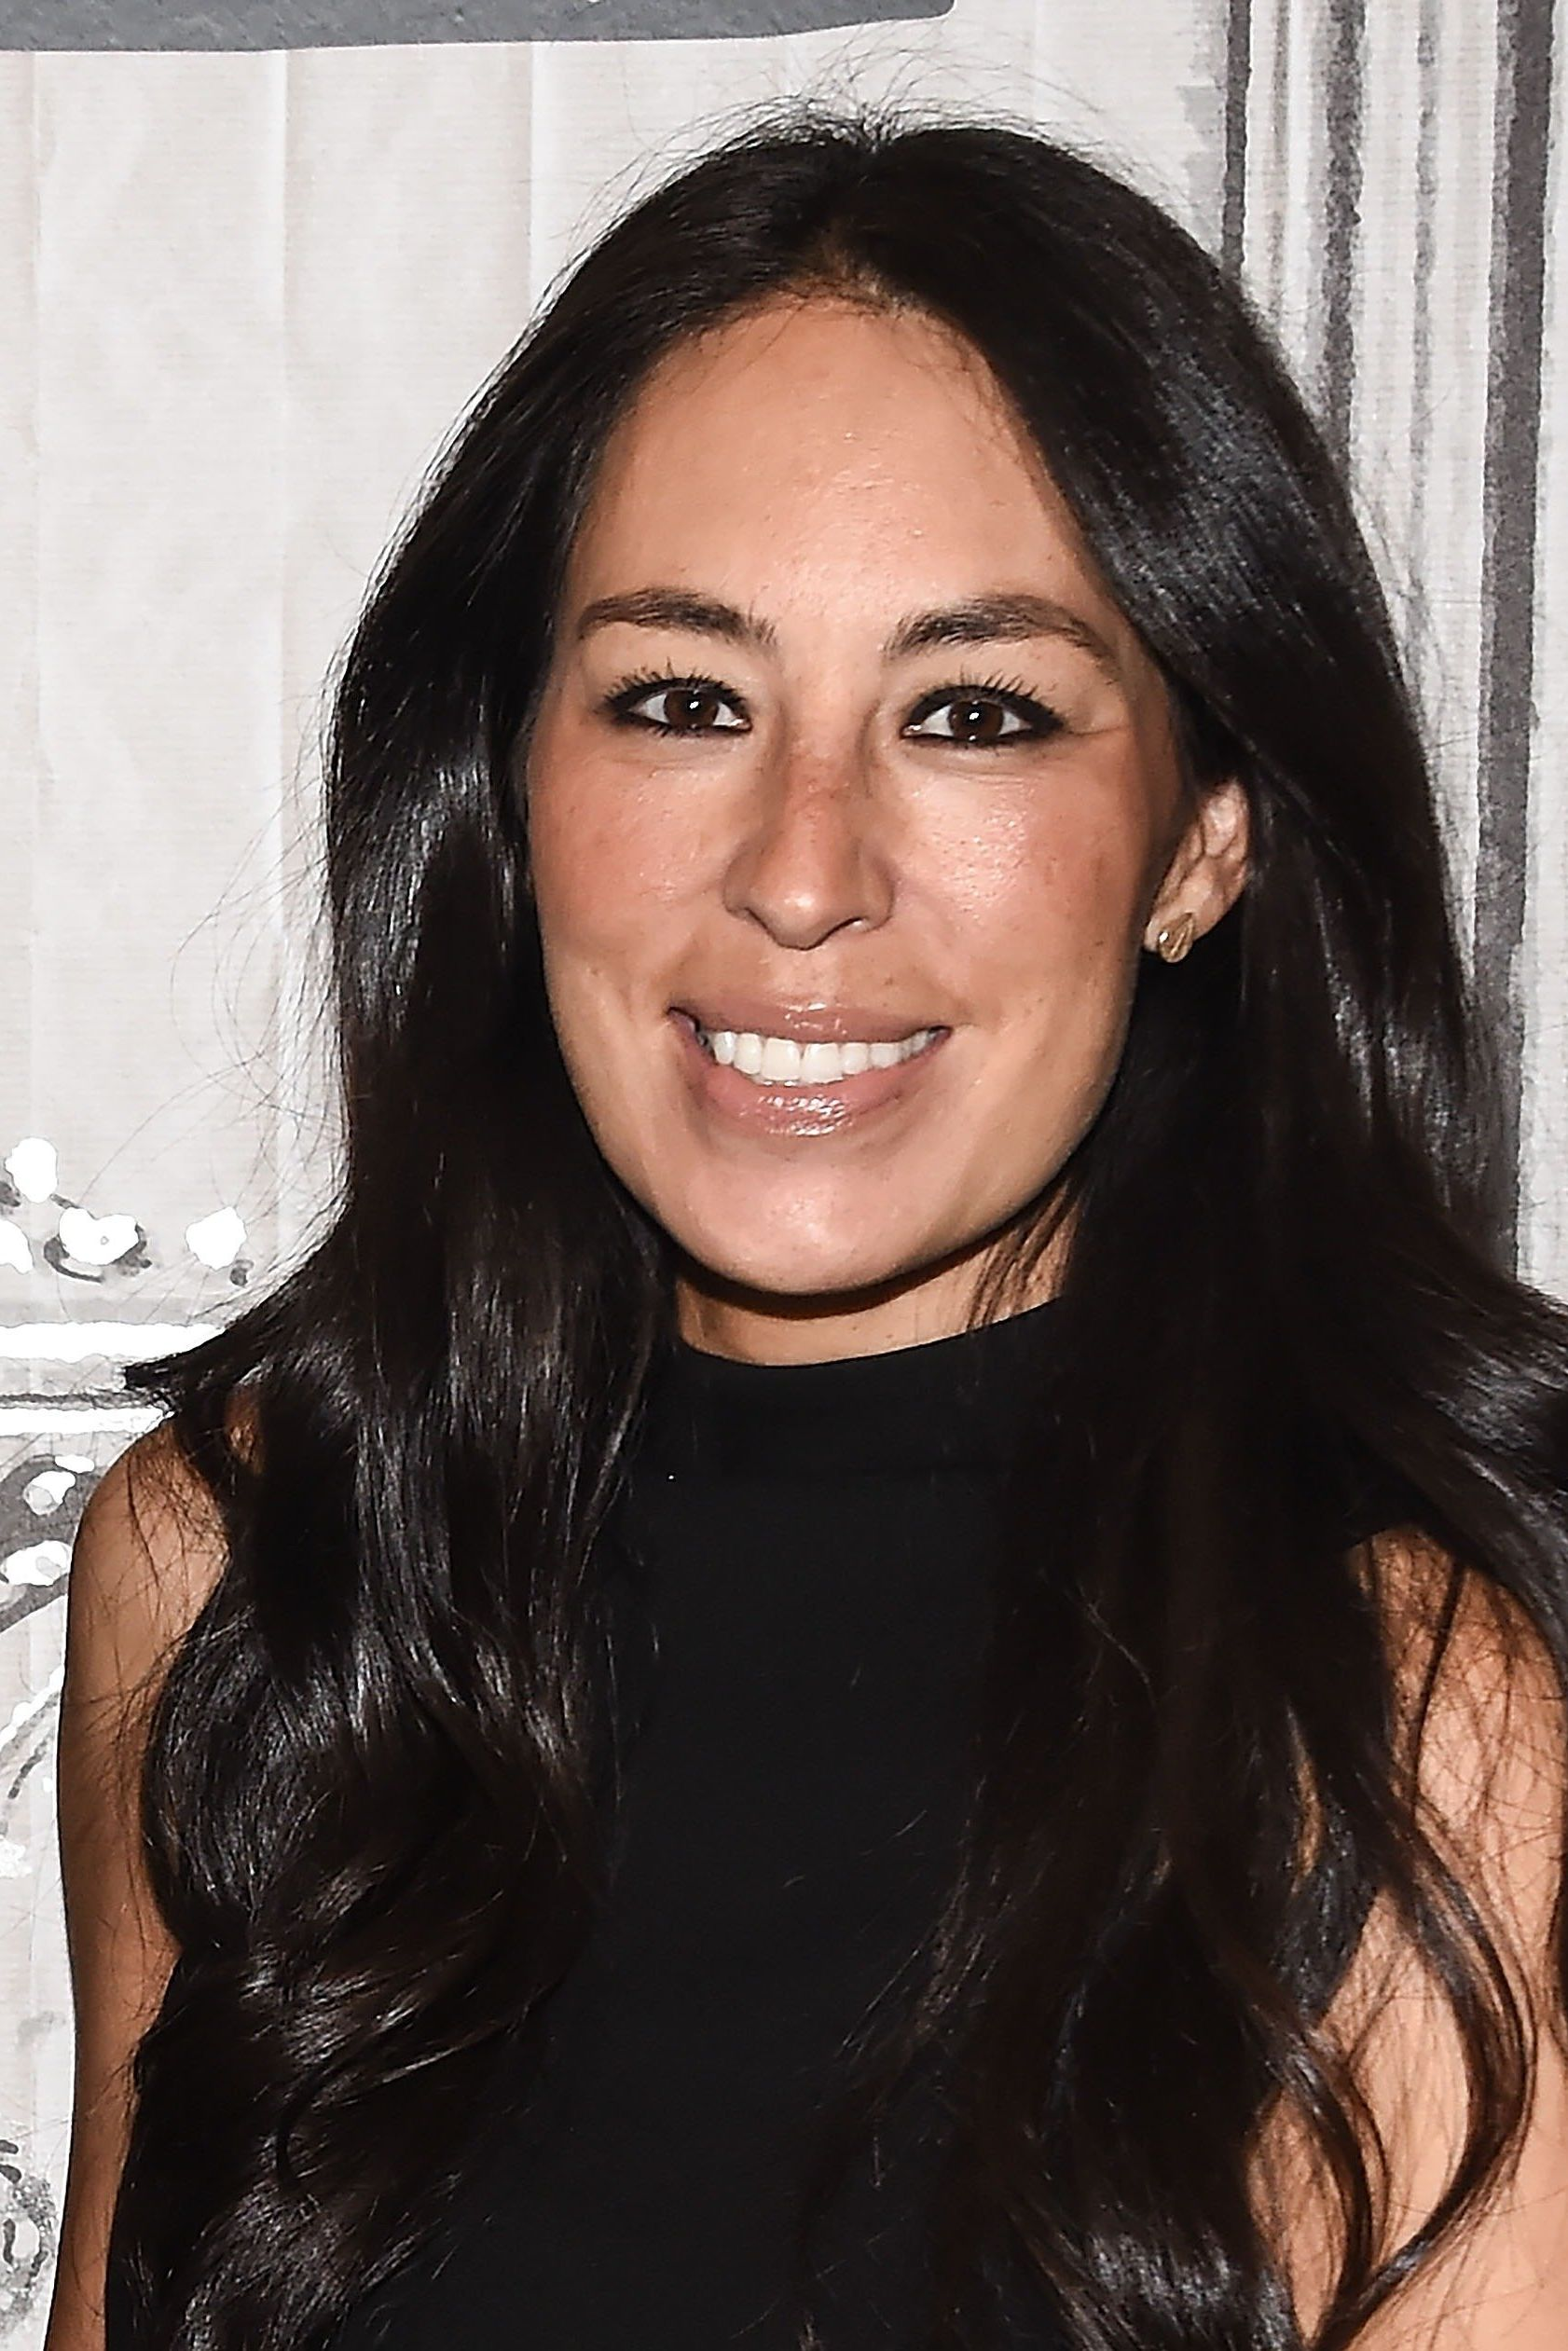 Joanna Gaines Reveals Her Pregnancy Cravings—and They're All Southern Classics!